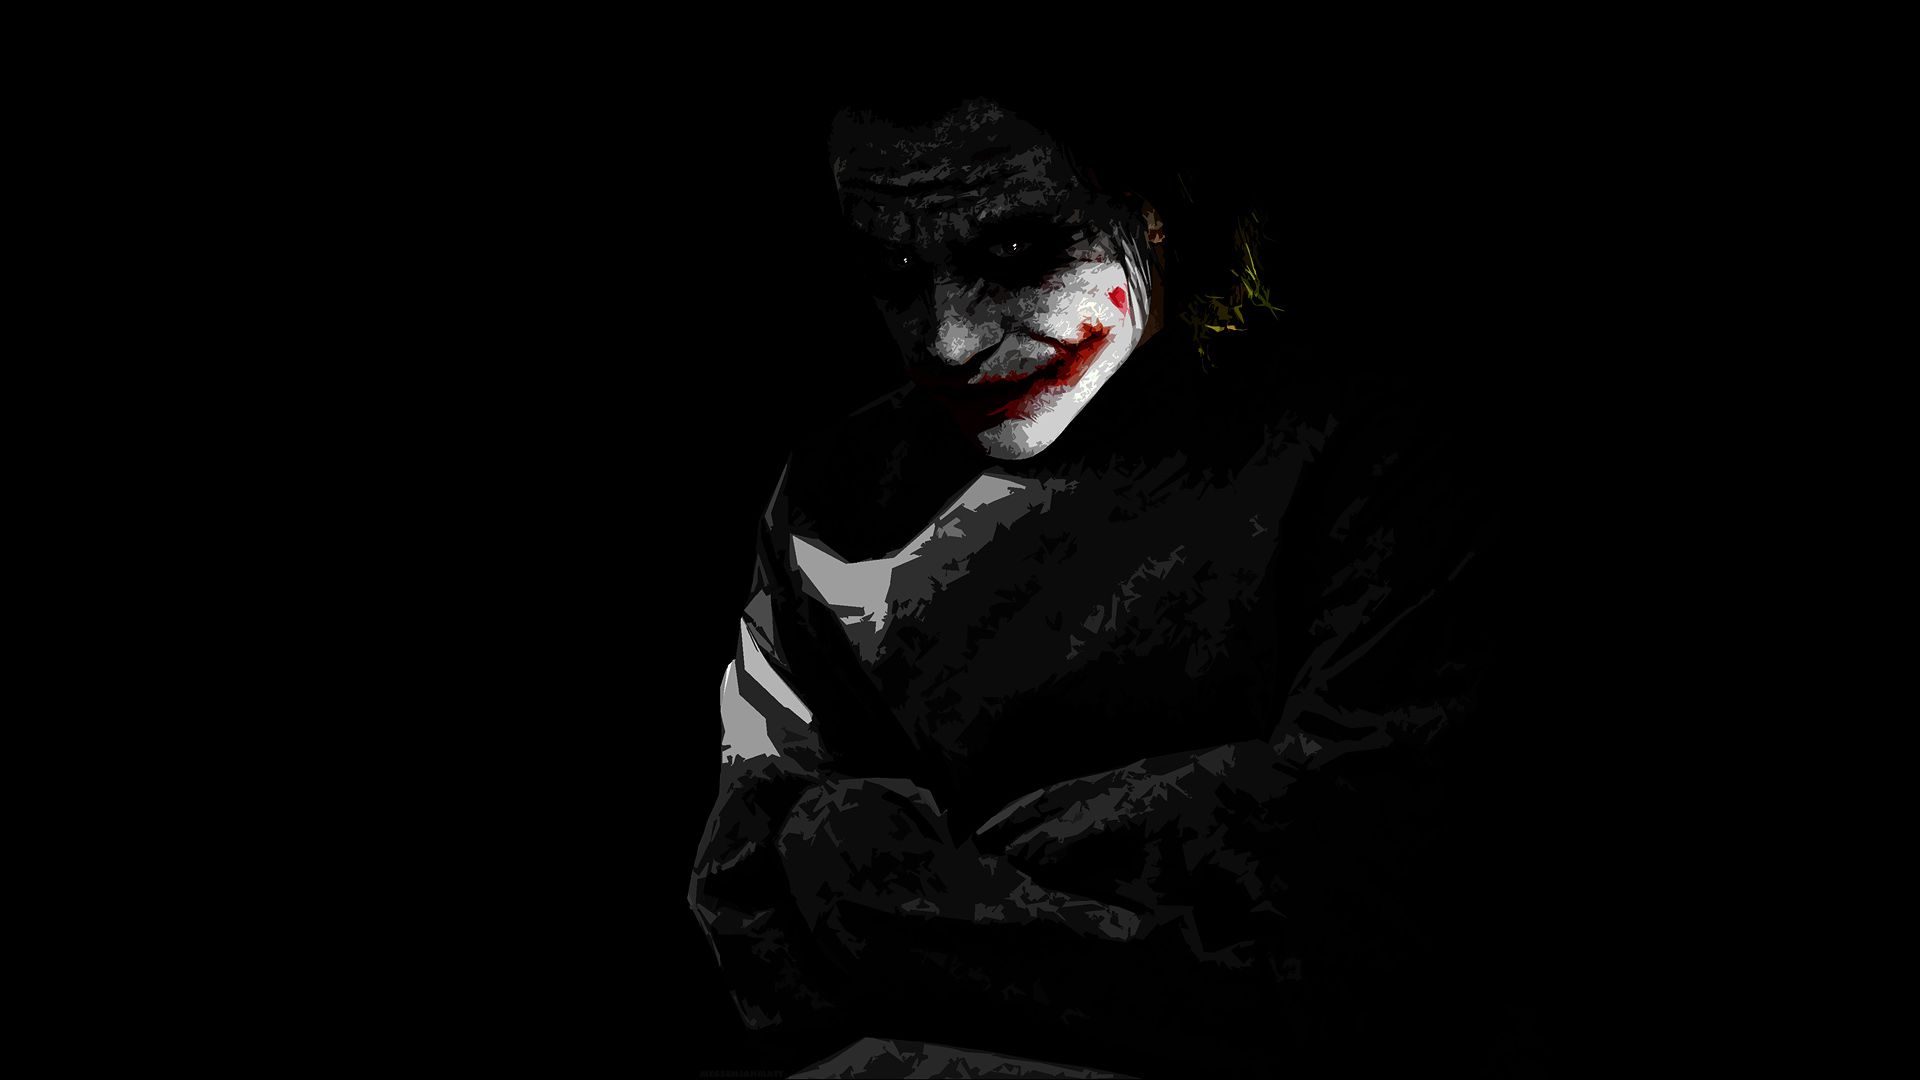 Dark Knight Joker Desktop Wallpaper Flip Wallpapers Download 1920x1080